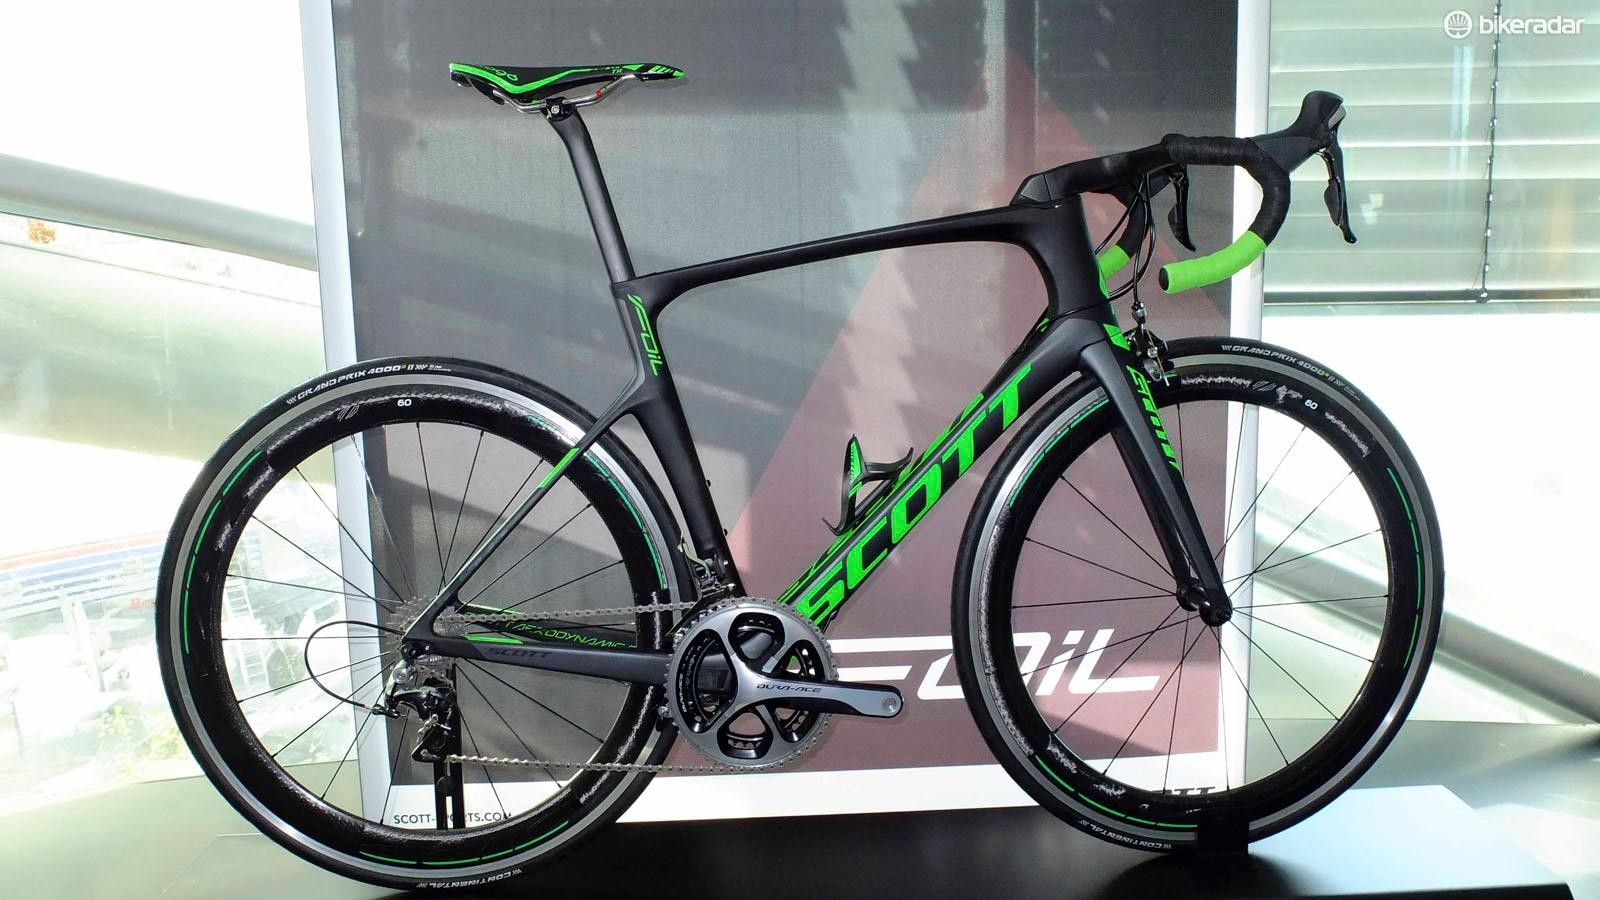 Scott's new Foil aero road bike was launched in Salzburg. This is the Team Issue model with mechanical Dura-Ace and Zipp 60 wheels